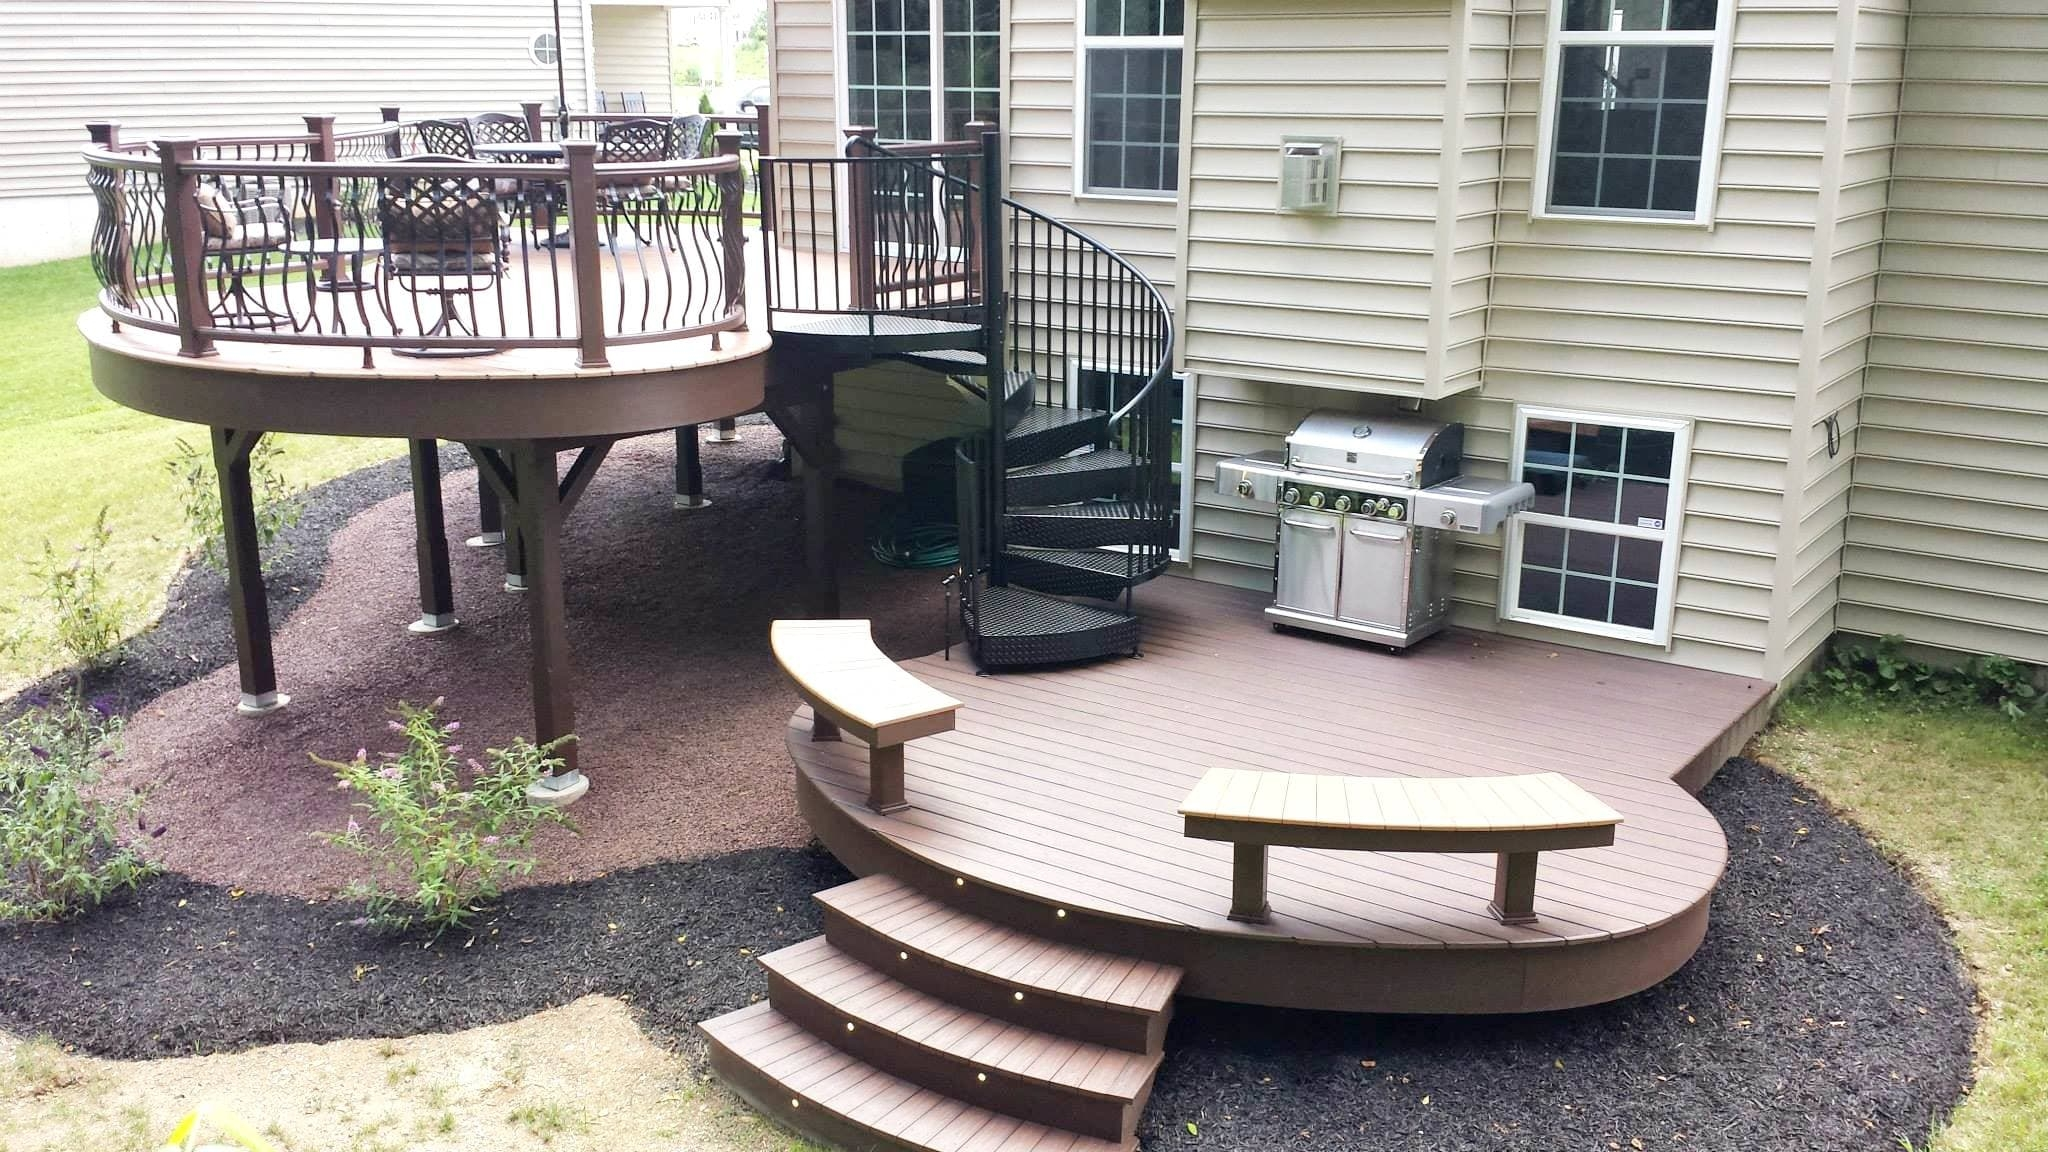 Five Weekend Diy Deck Projects Salter Spiral Stair | Spiral Staircase Outdoor Deck | Outside Deck | Built Spiral Stair | Balcony Outdoor | Log | 3 Storey